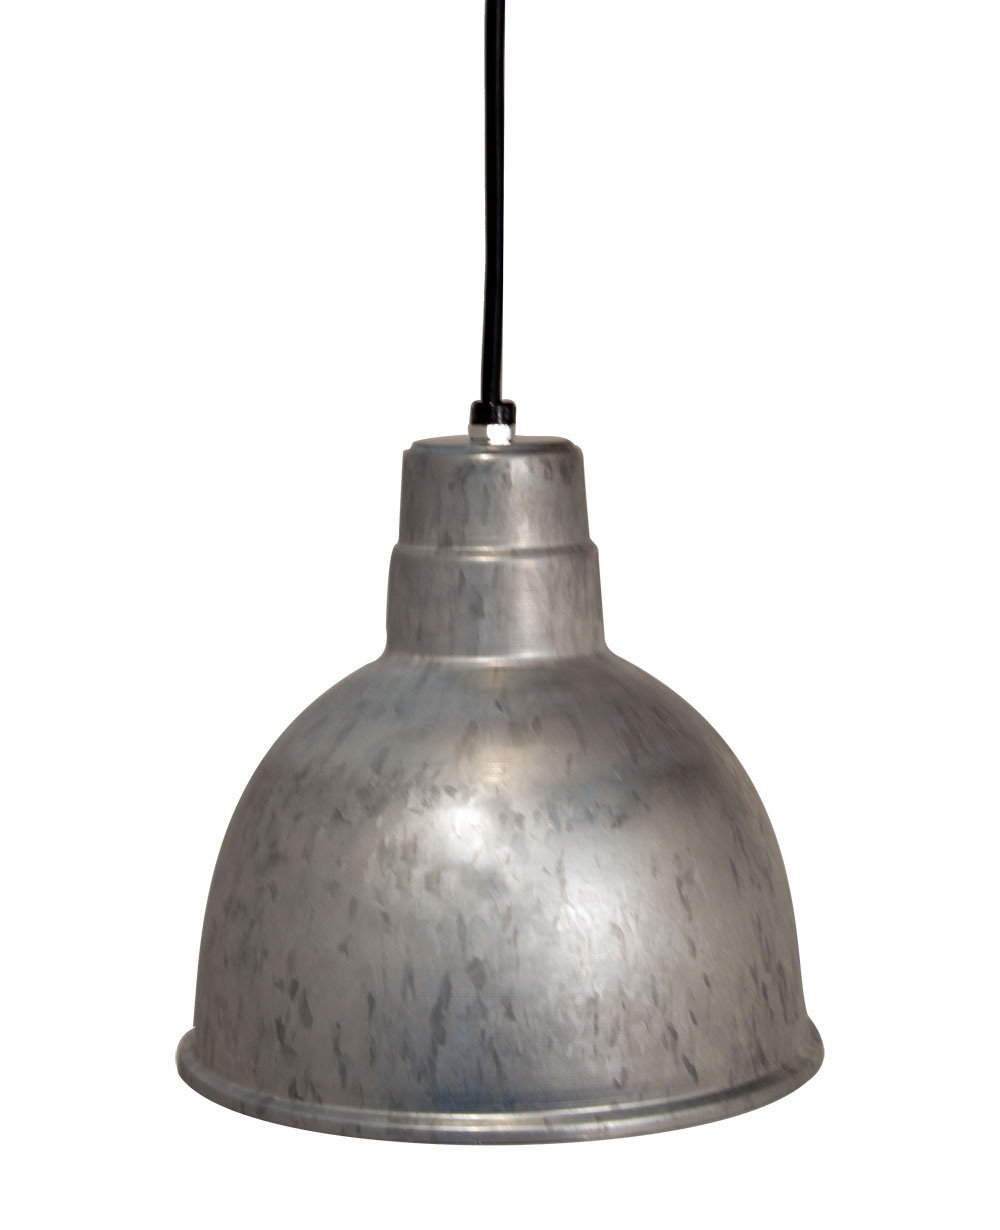 Newest Outdoor Barn Ceiling Lights In Home Decor: Perfect Galvanized Barn Light To Complete Stunning (Gallery 19 of 20)